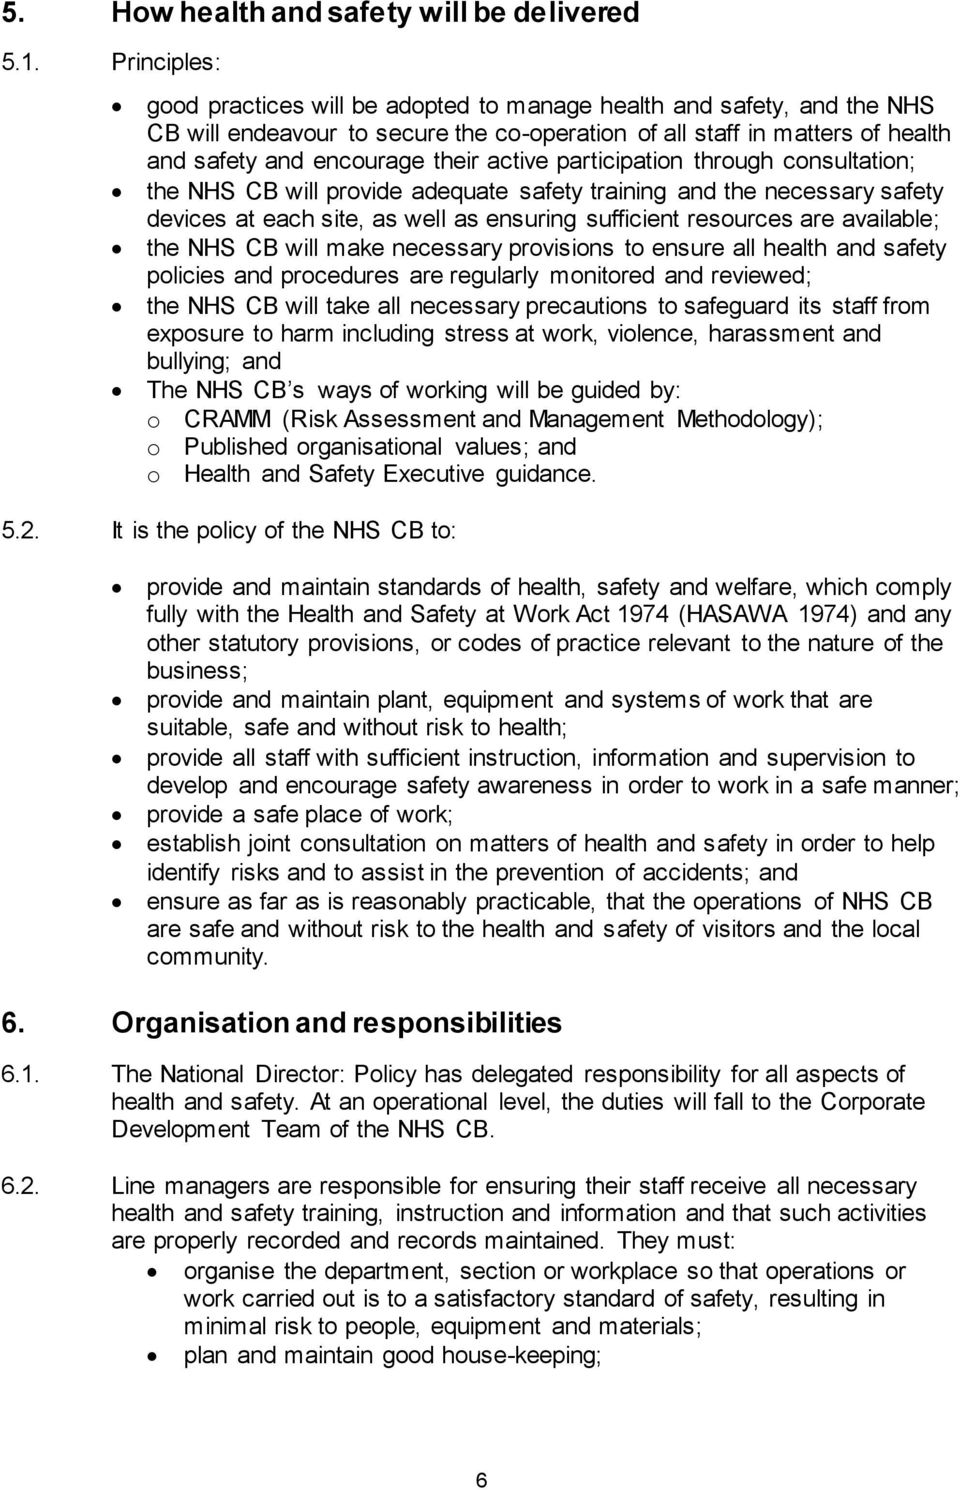 active participation through consultation; the NHS CB will provide adequate safety training and the necessary safety devices at each site, as well as ensuring sufficient resources are available; the